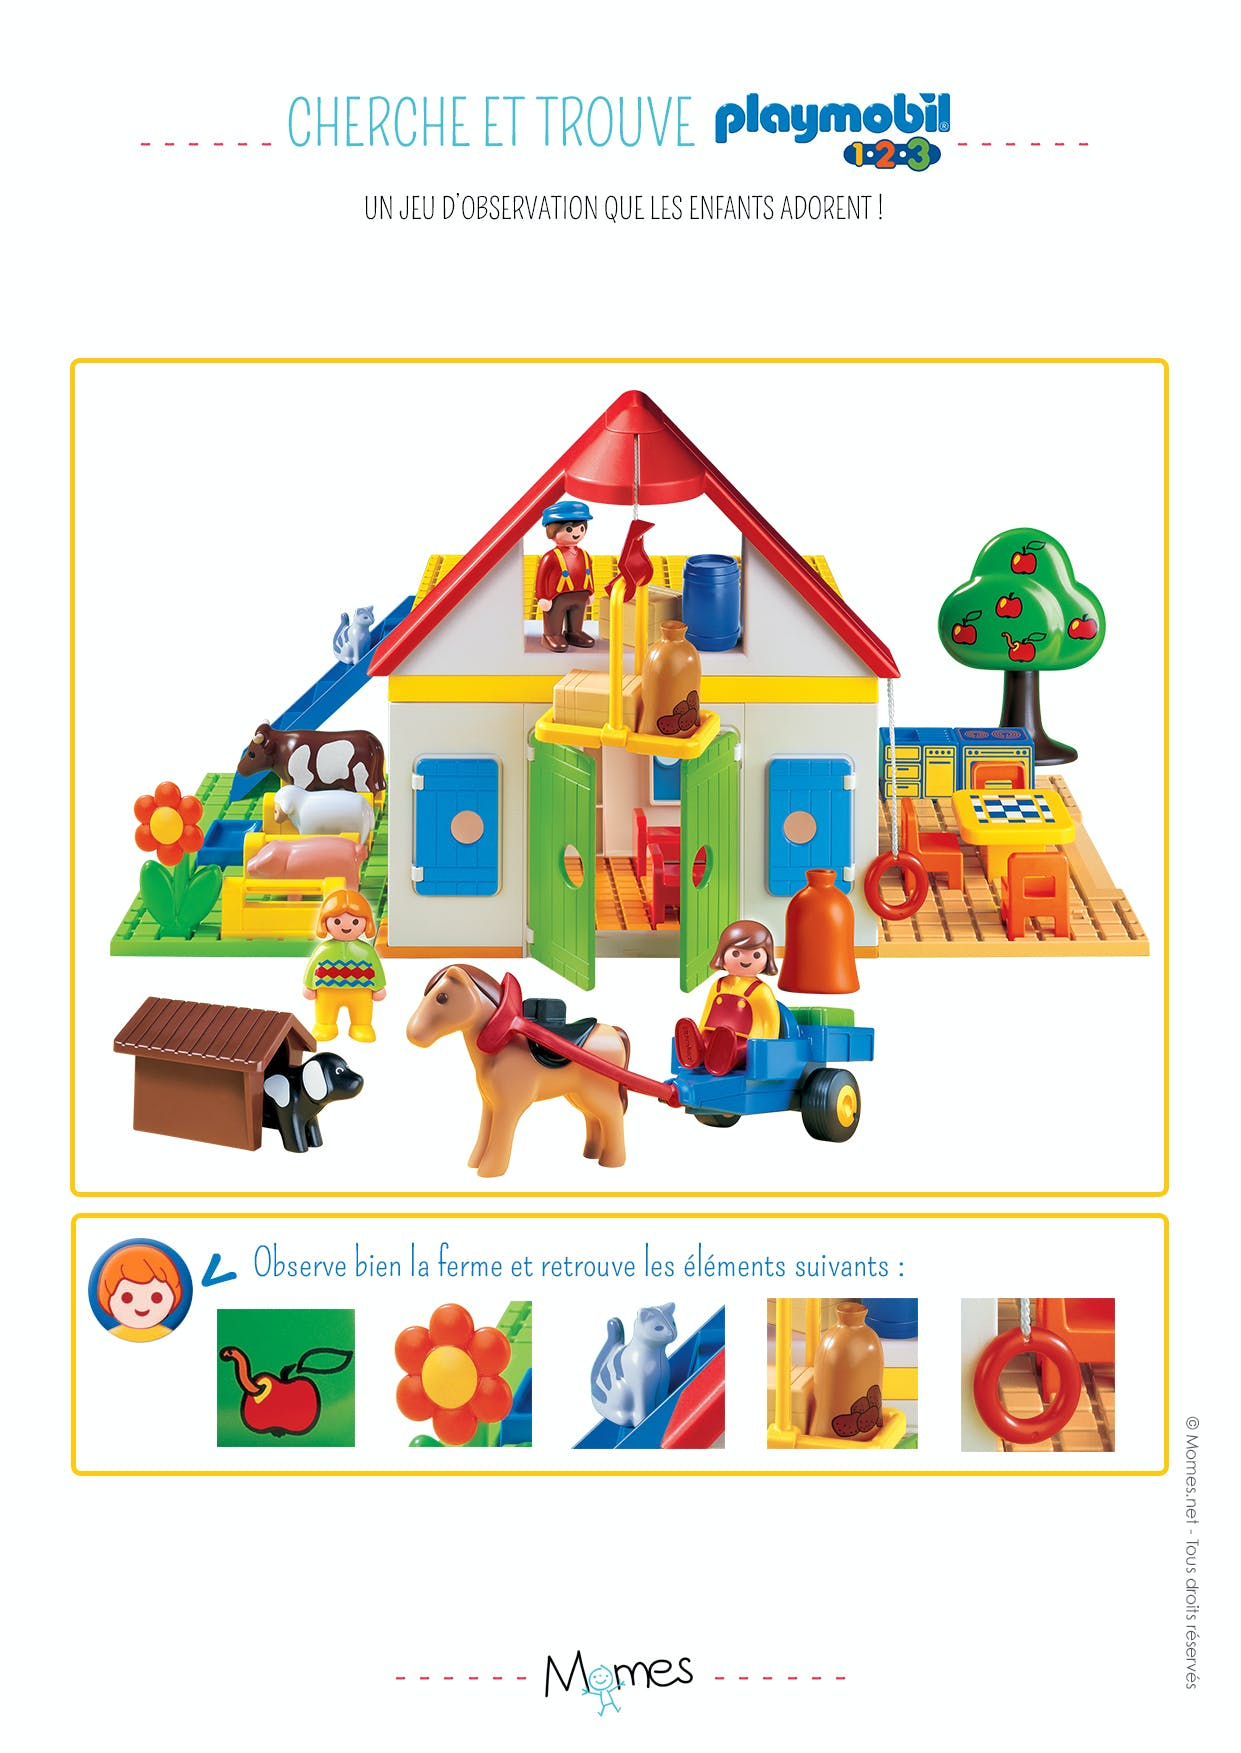 cherche et trouve la ferme playmobil 123. Black Bedroom Furniture Sets. Home Design Ideas